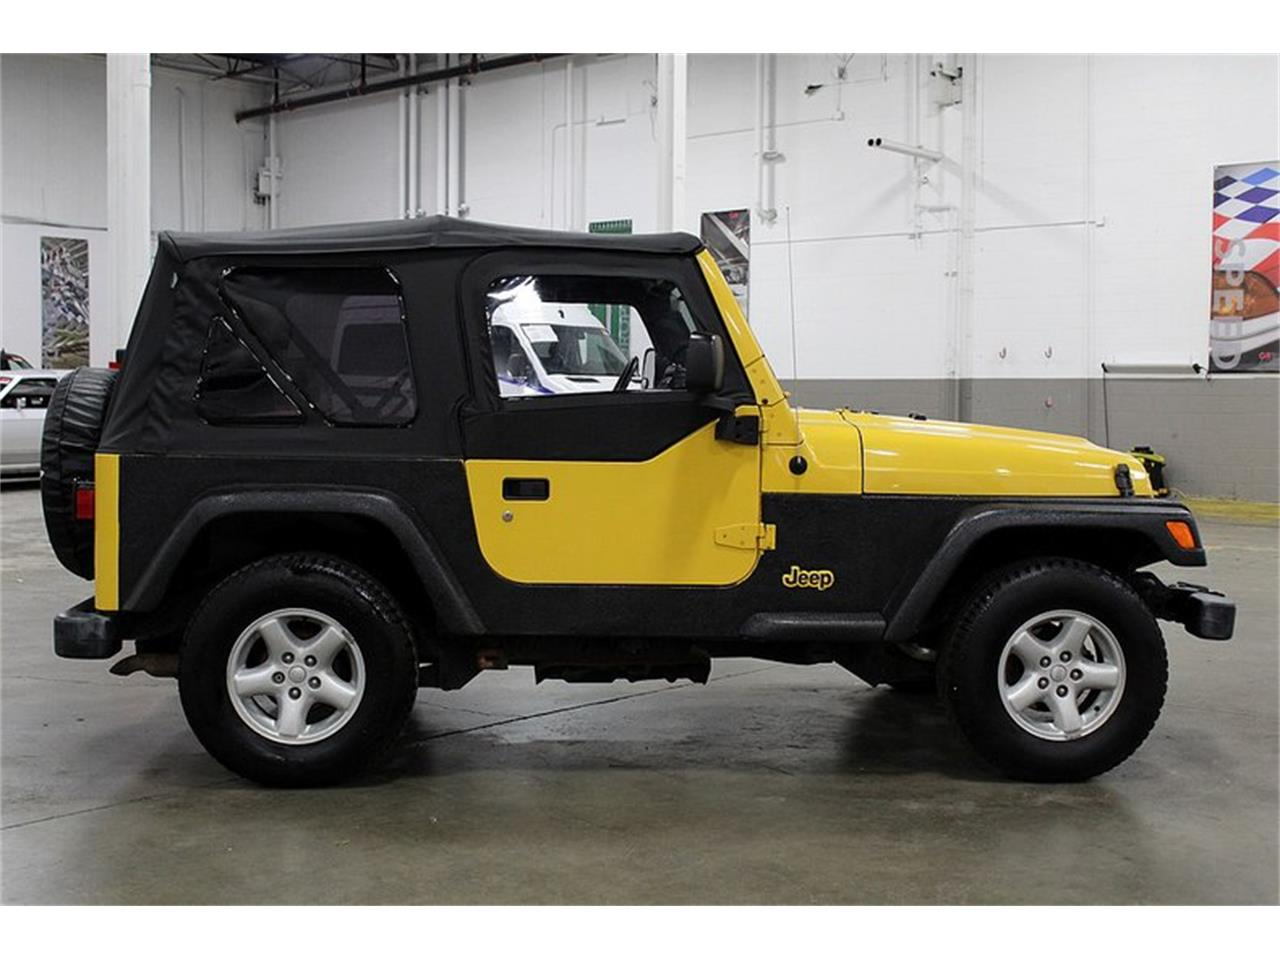 2005 Jeep Wrangler for sale in Kentwood, MI – photo 6